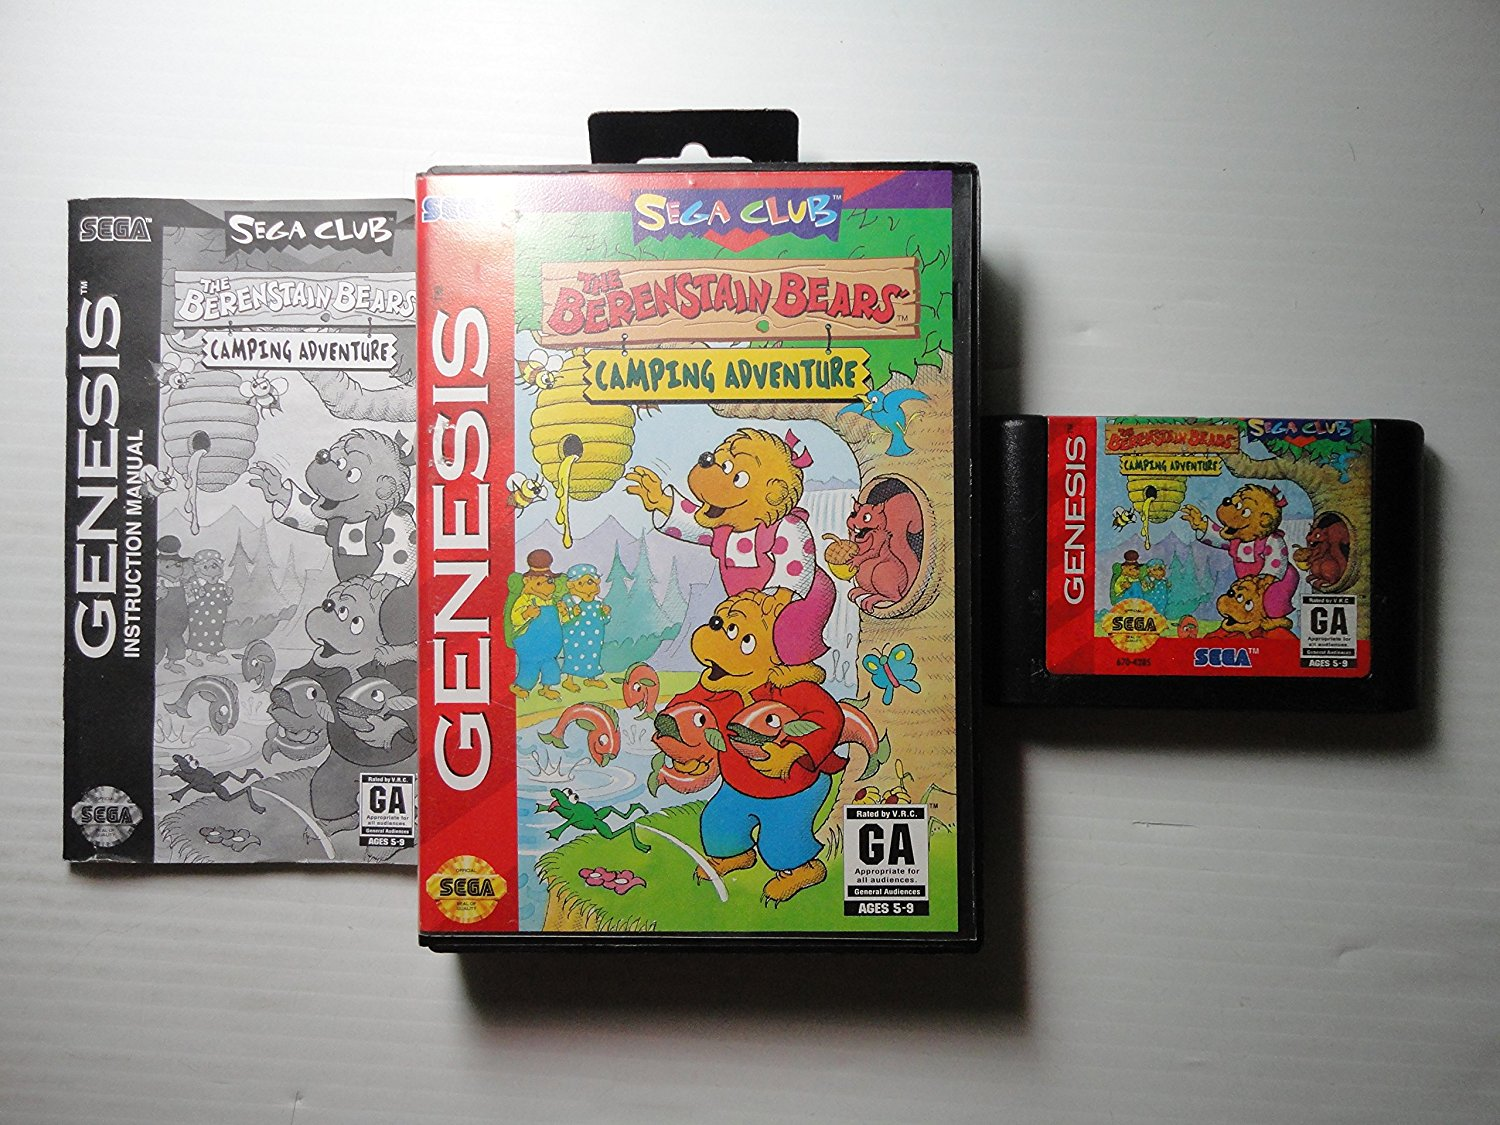 SG: BERENSTAIN BEARS; THE: CAMPING ADVENTURE (BOX)